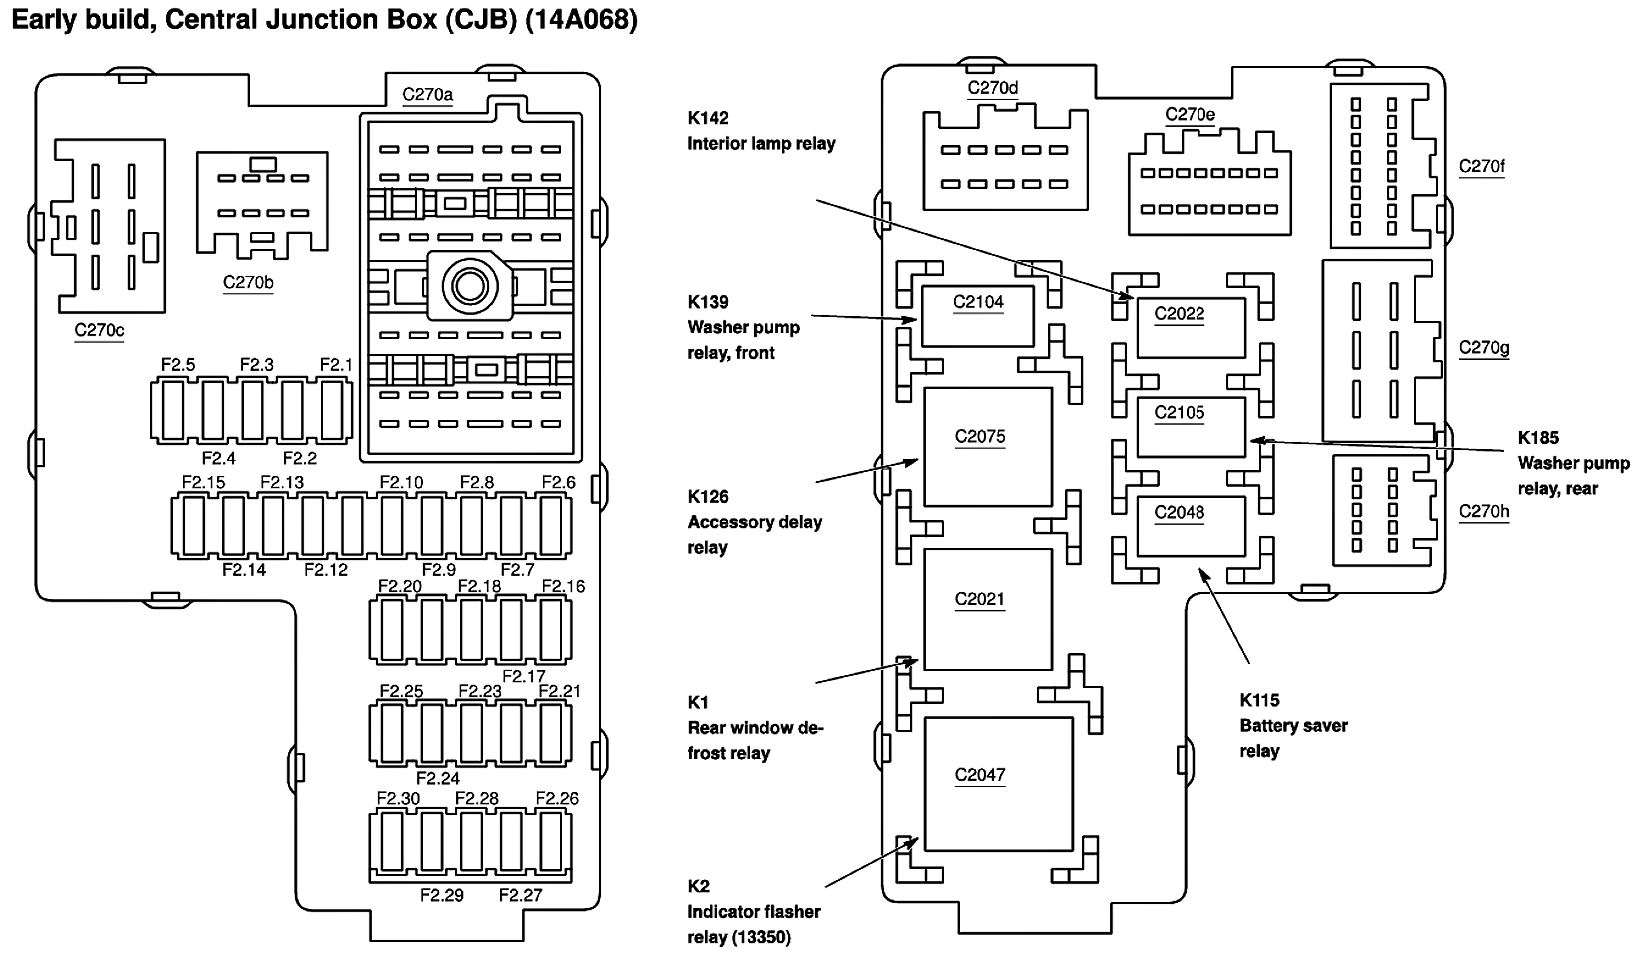 [DIAGRAM_4PO]  RE_1889] Fuse Box Diagram On Klr 650 Wiring Diagram Furthermore Jeep Cj7  Fuse Free Diagram | 2000 Ford Explorer Wiring Diagrams Hecho |  | Hylec Epsy Staix Usnes Ling Props Chim Cular Puti Onica Gue45 Sapebe  Mohammedshrine Librar Wiring 101